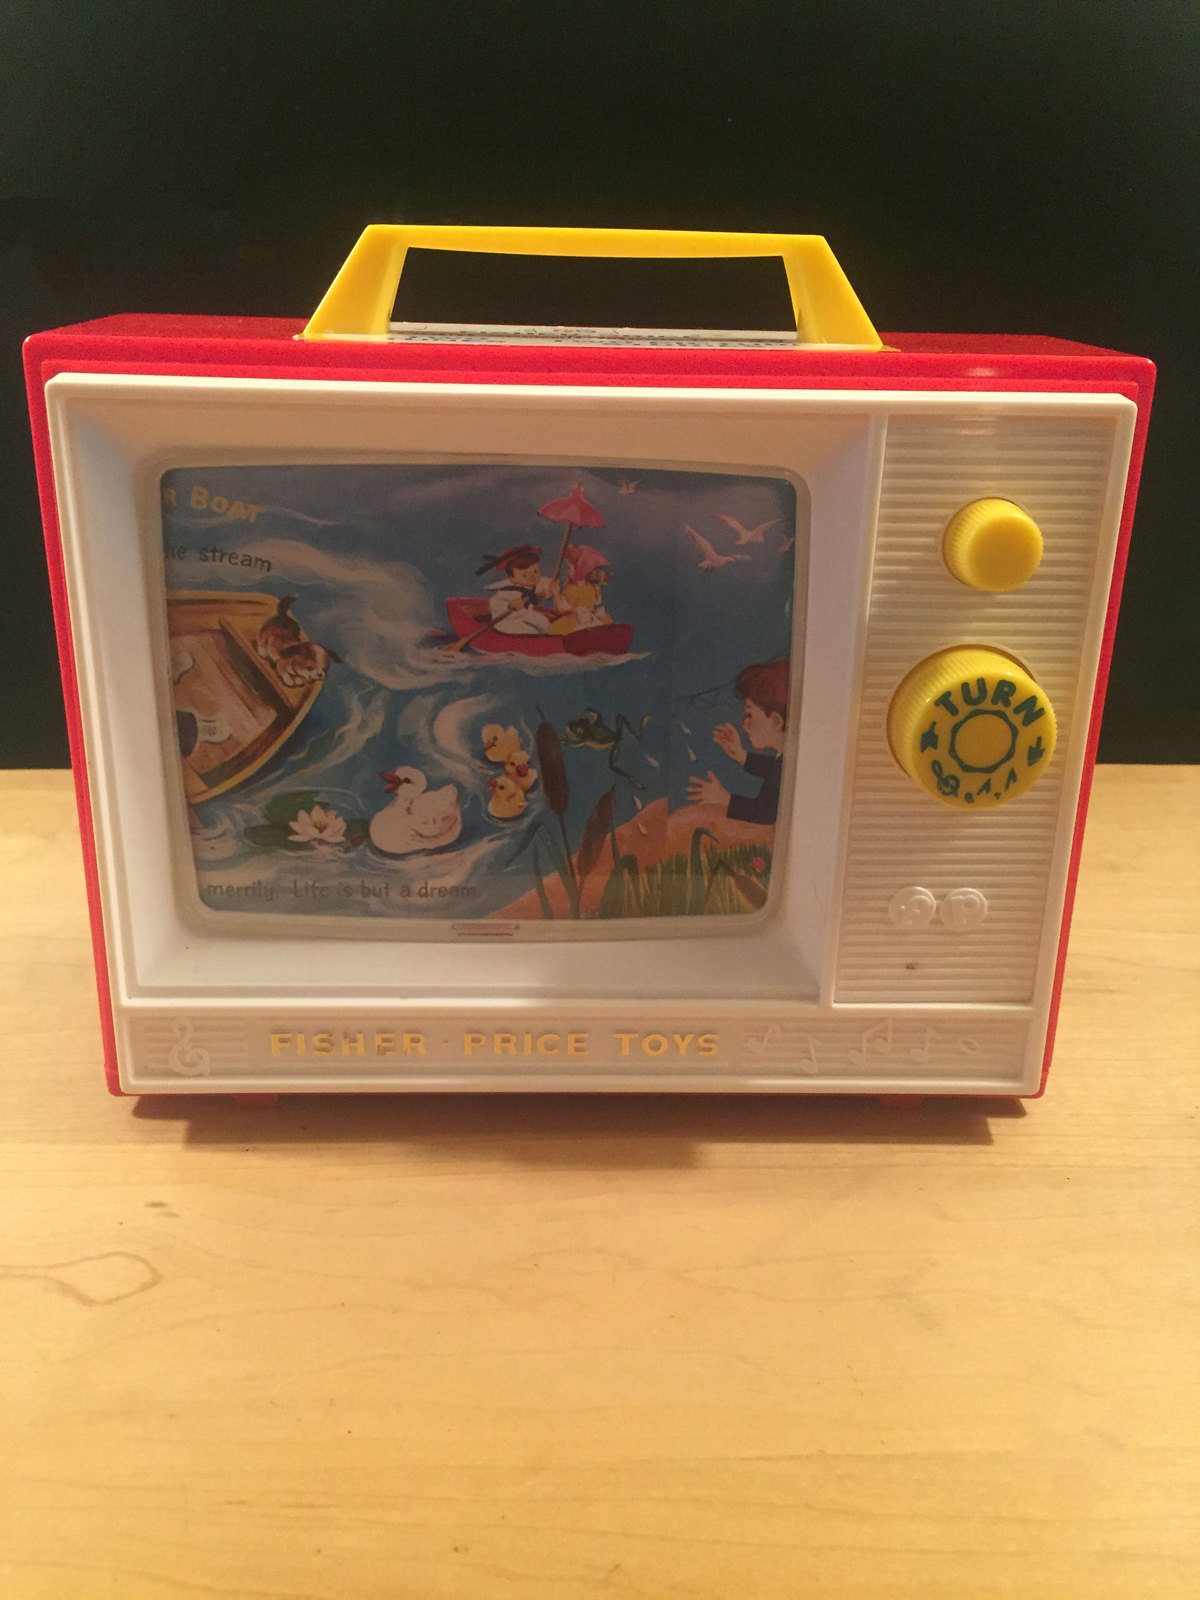 Fisher Price Giant Screen Music Box TV Two Tune/Stories Classic Toy 2009